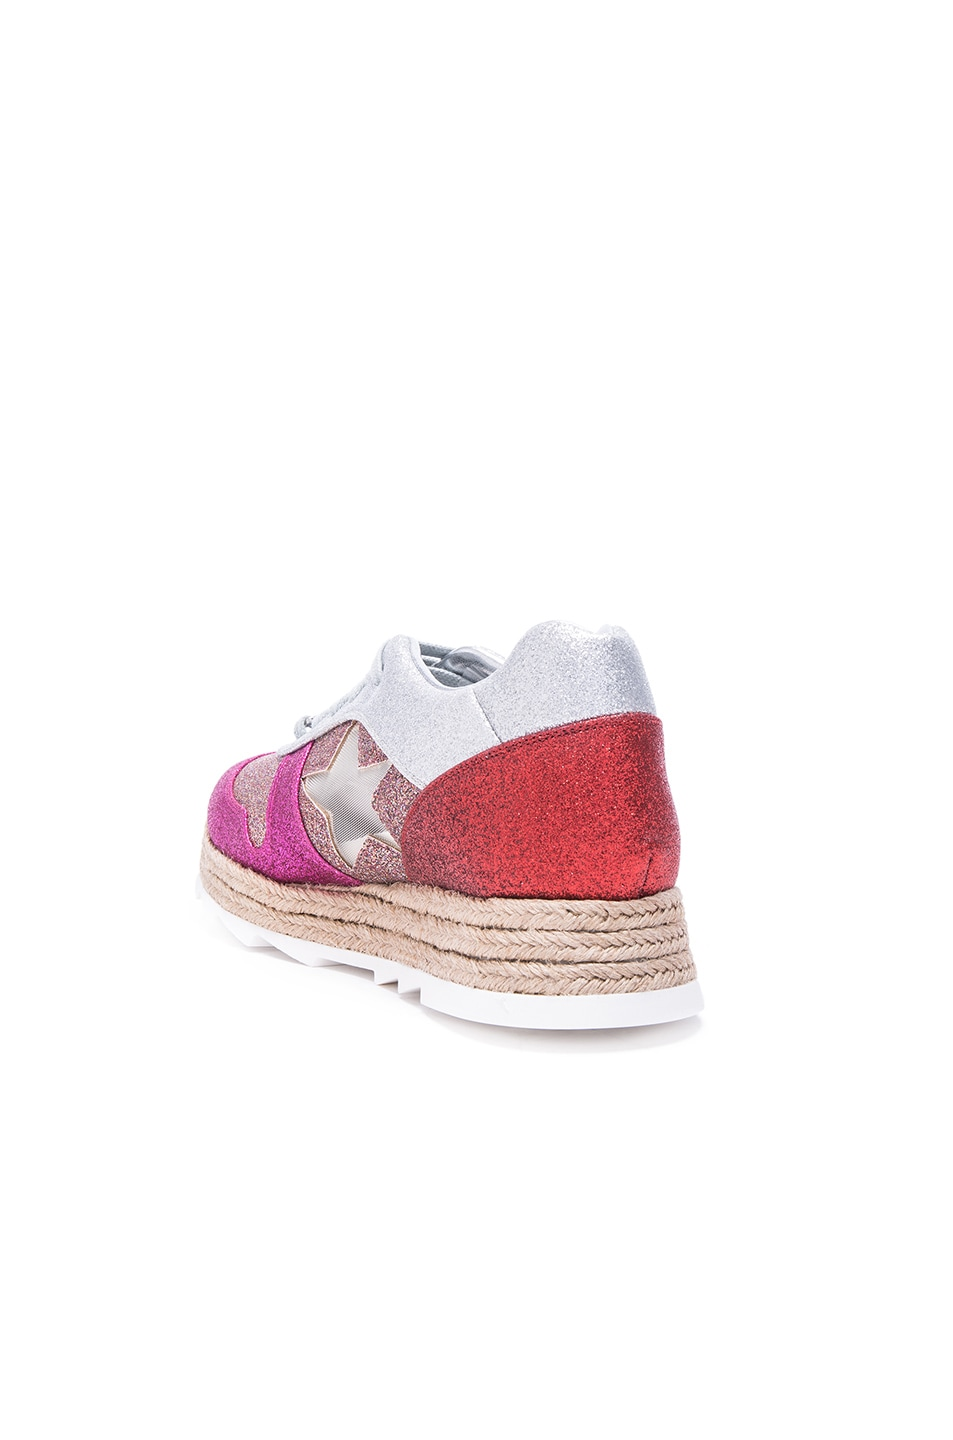 ed8ae6f72511 Image 3 of Stella McCartney Macy Lace Up Sneakers in Multi